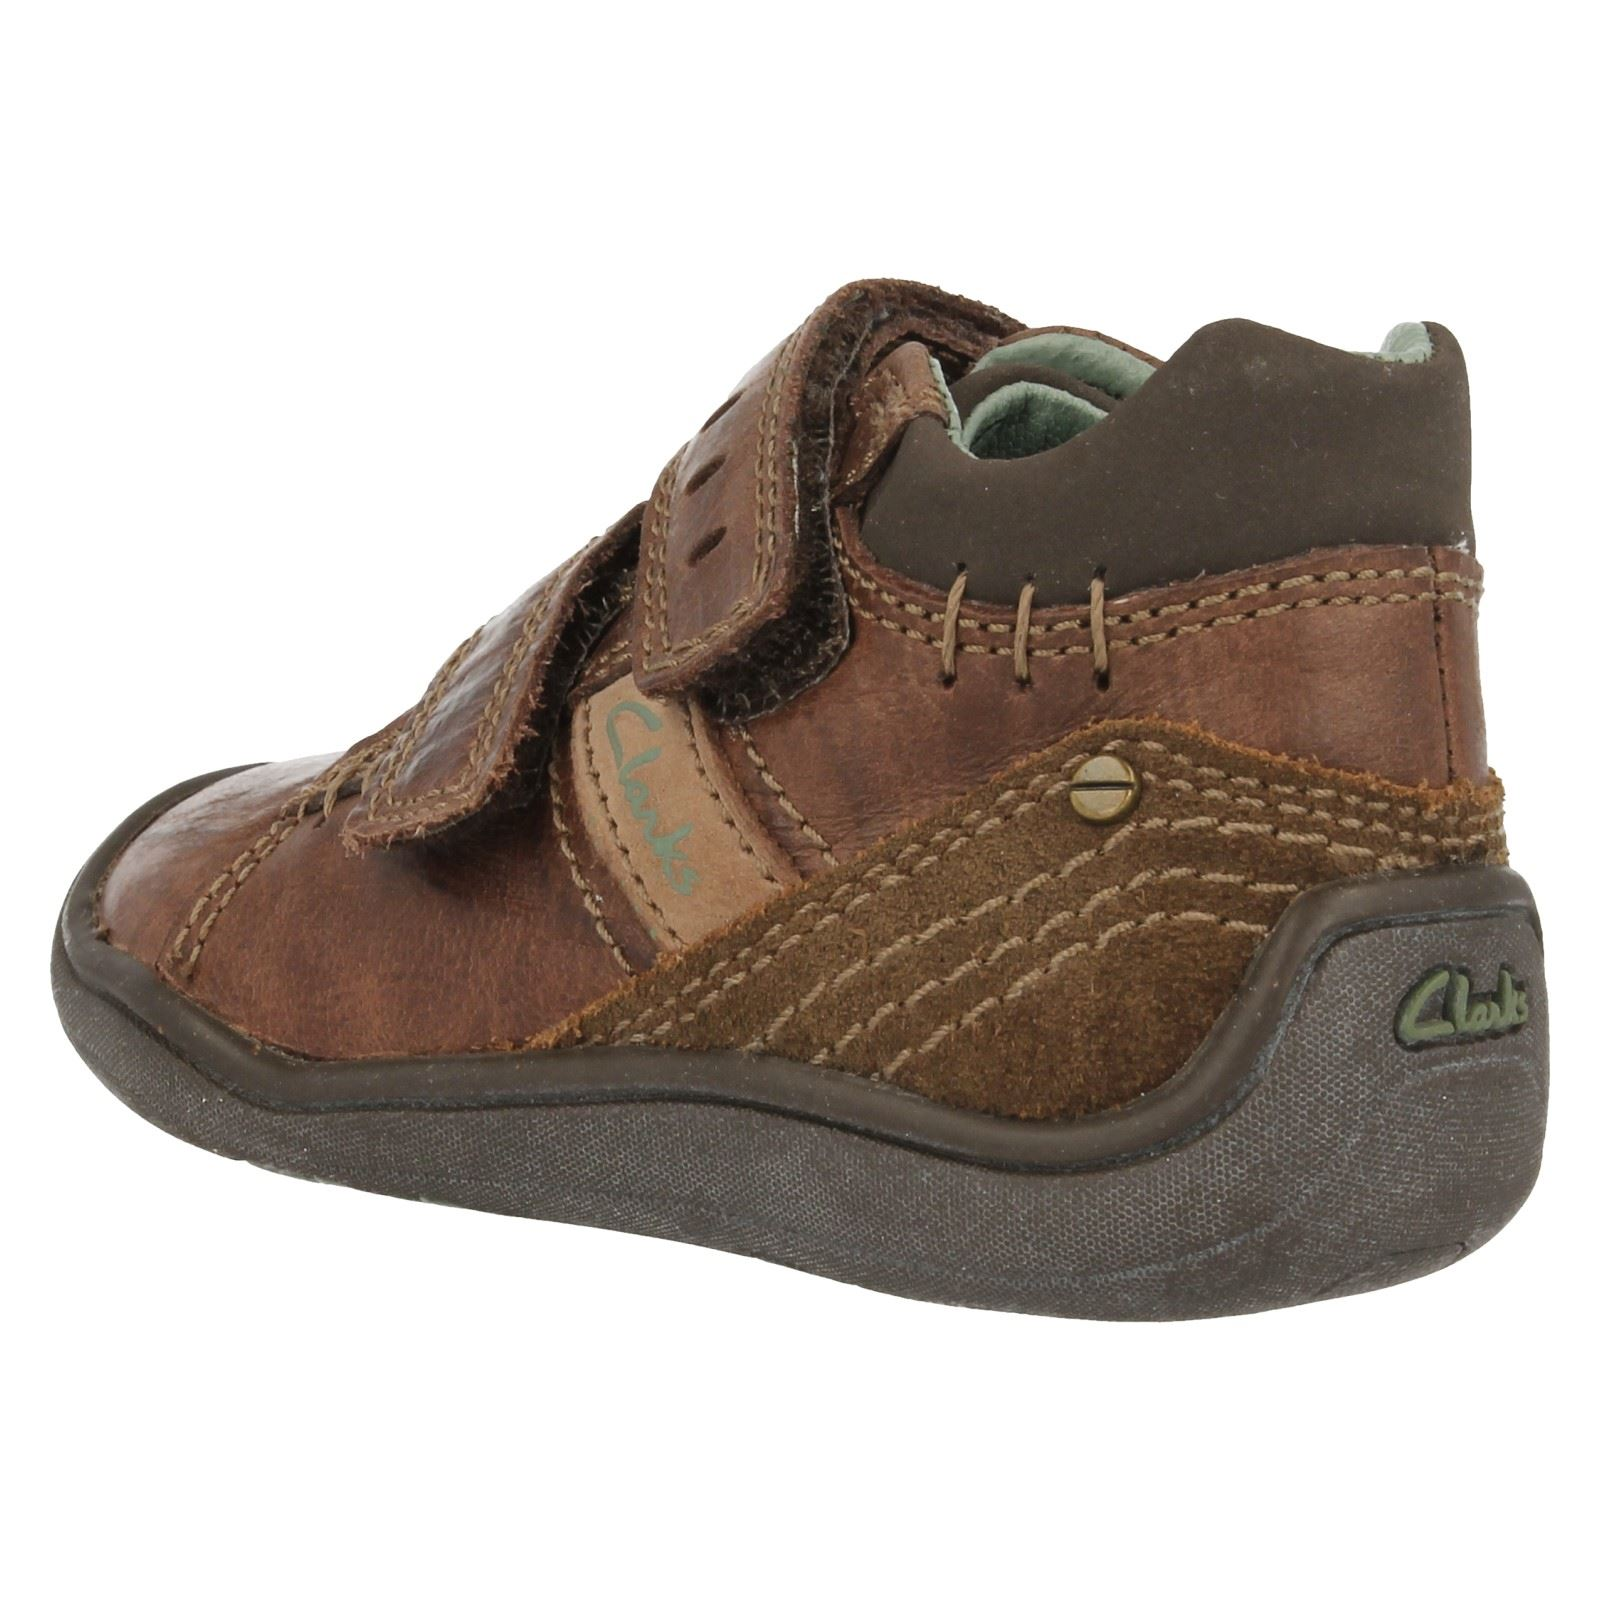 Boys toddler shoes Give them the best start in life with our range of boys' first shoes. Lightweight and flexible, with plenty of support for toddlers' growing feet, they'll be up-and-running on no time.